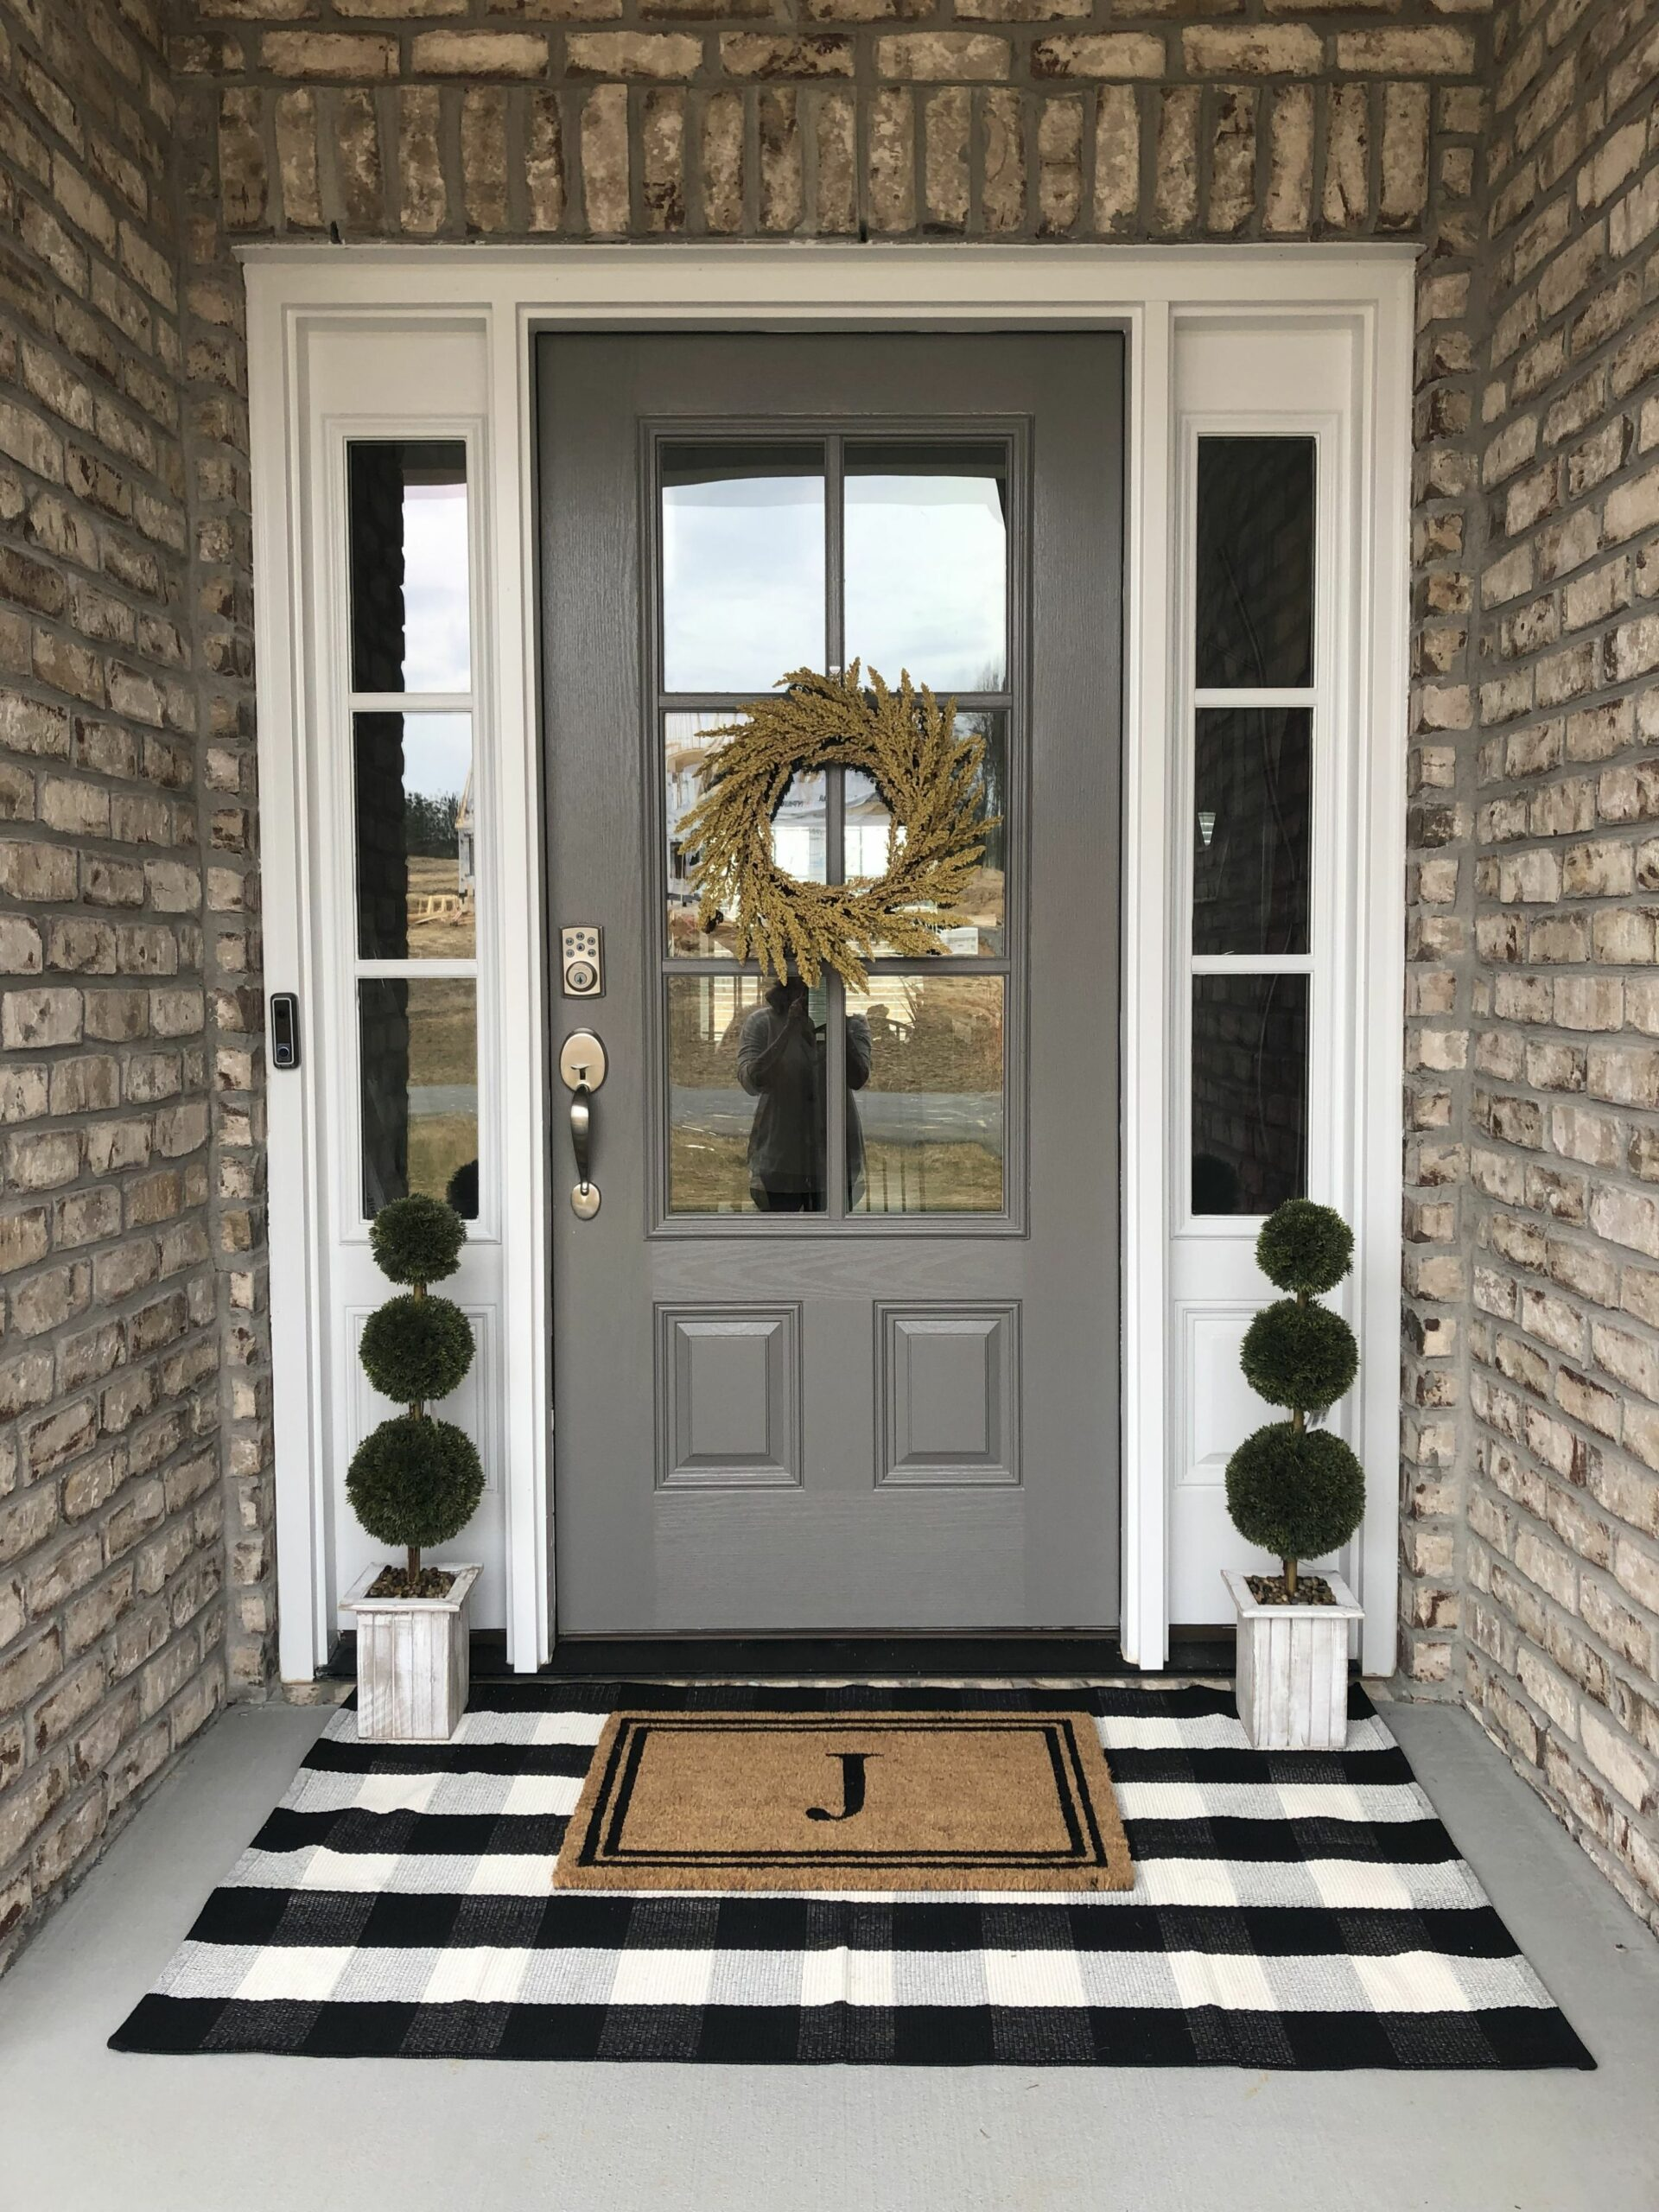 frontporchideas #frontdoor #modernfrontporch #farmhouse ..